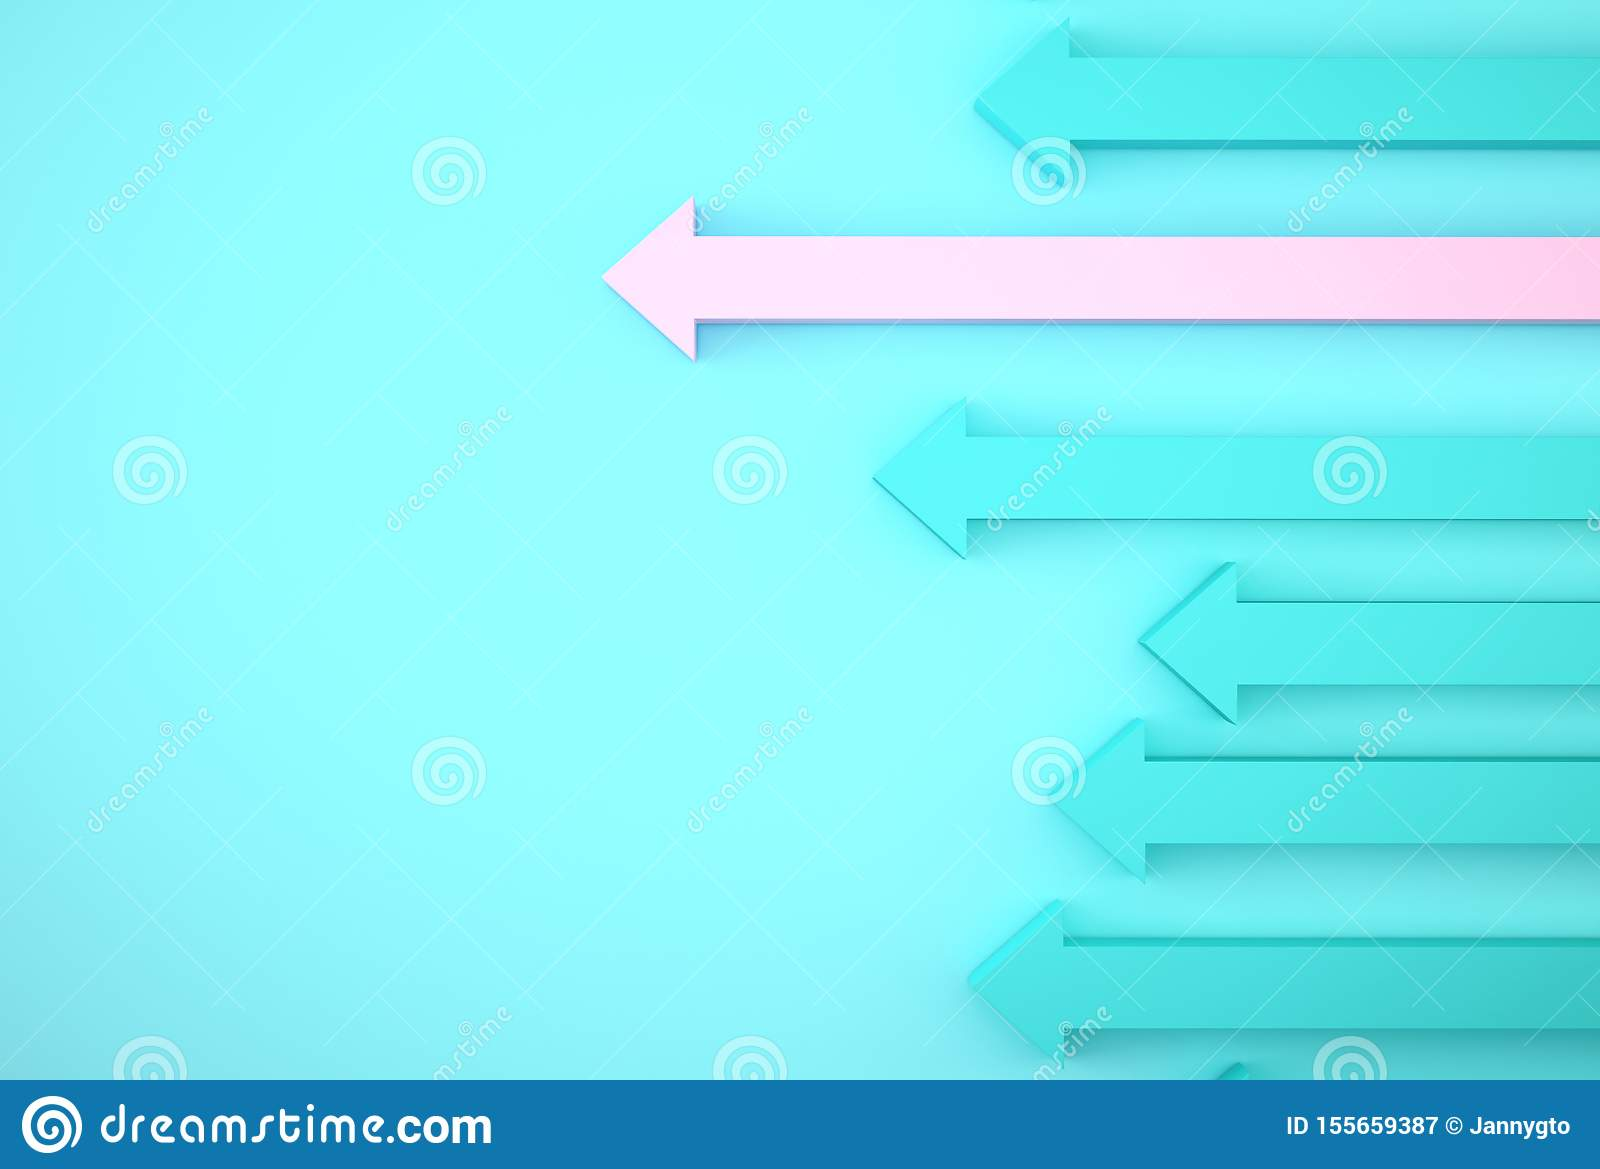 Abstract of pink arrow graph on blue background, corporate future growth plan. Business development to success and growing growth